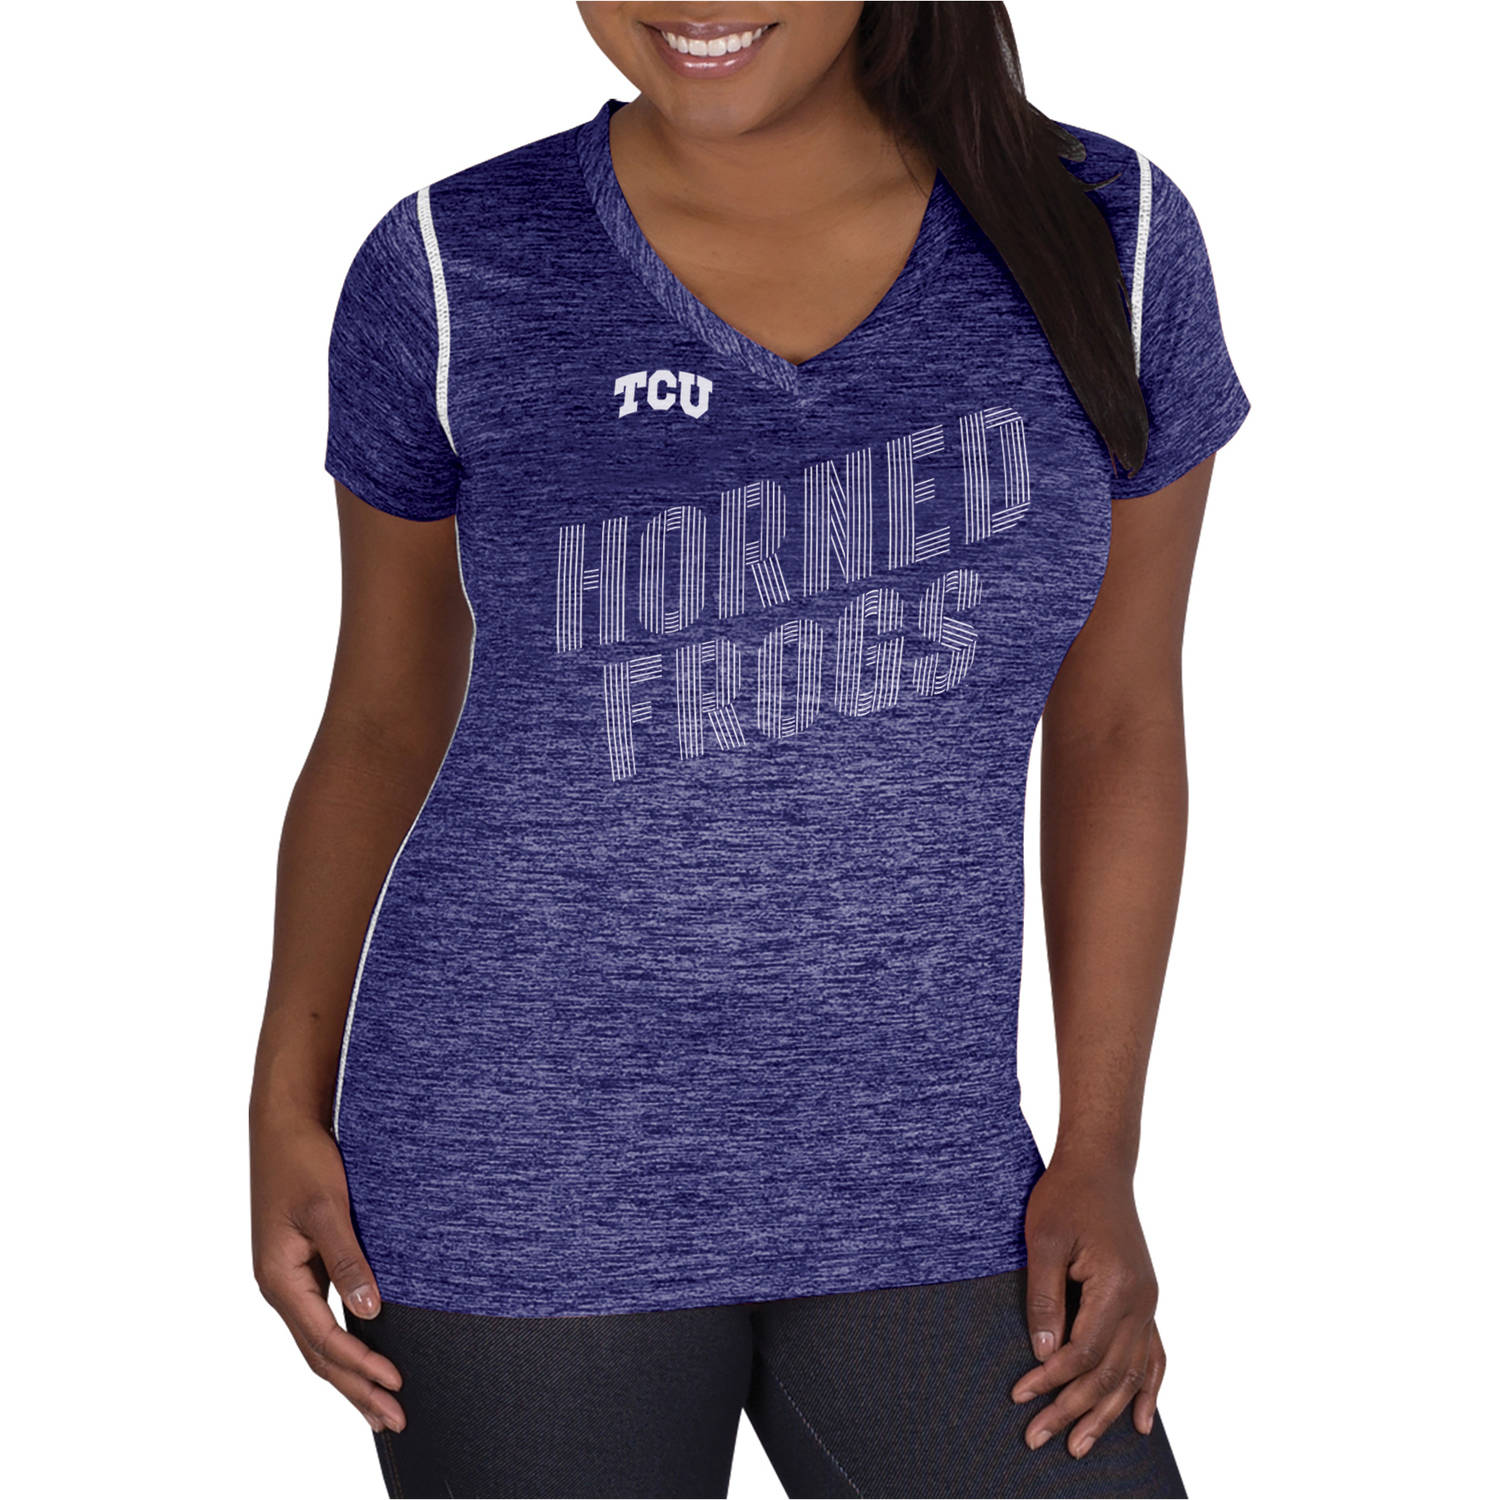 NCAA TCU Horned Frogs Ladies Classic-Fit Synthetic V-Neck Tee